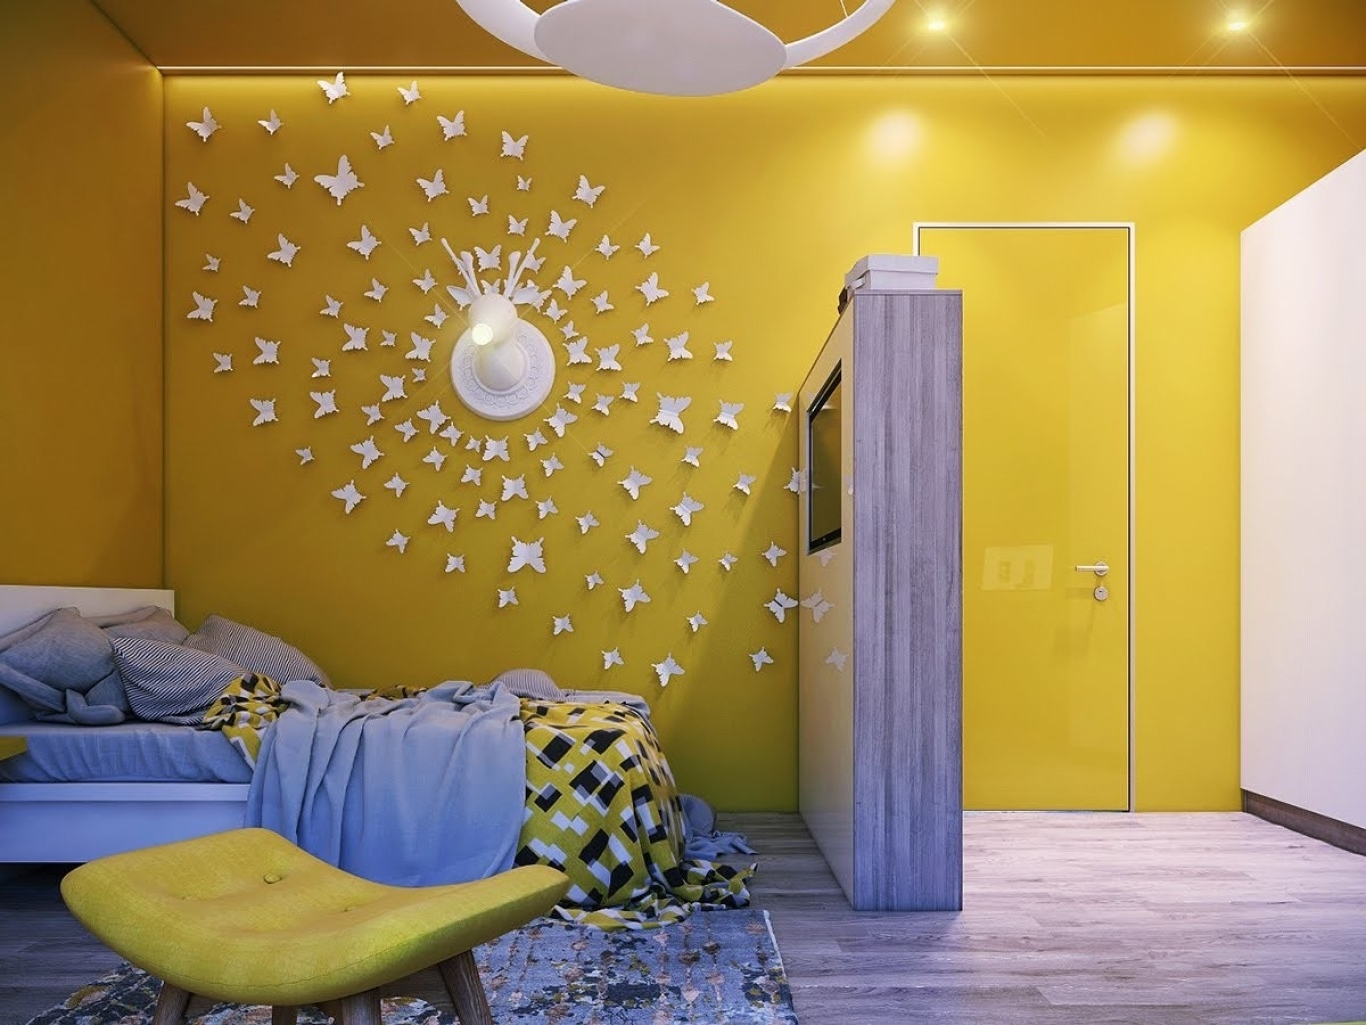 Famous Cloud Wall Decor Composition - The Wall Art Decorations ...